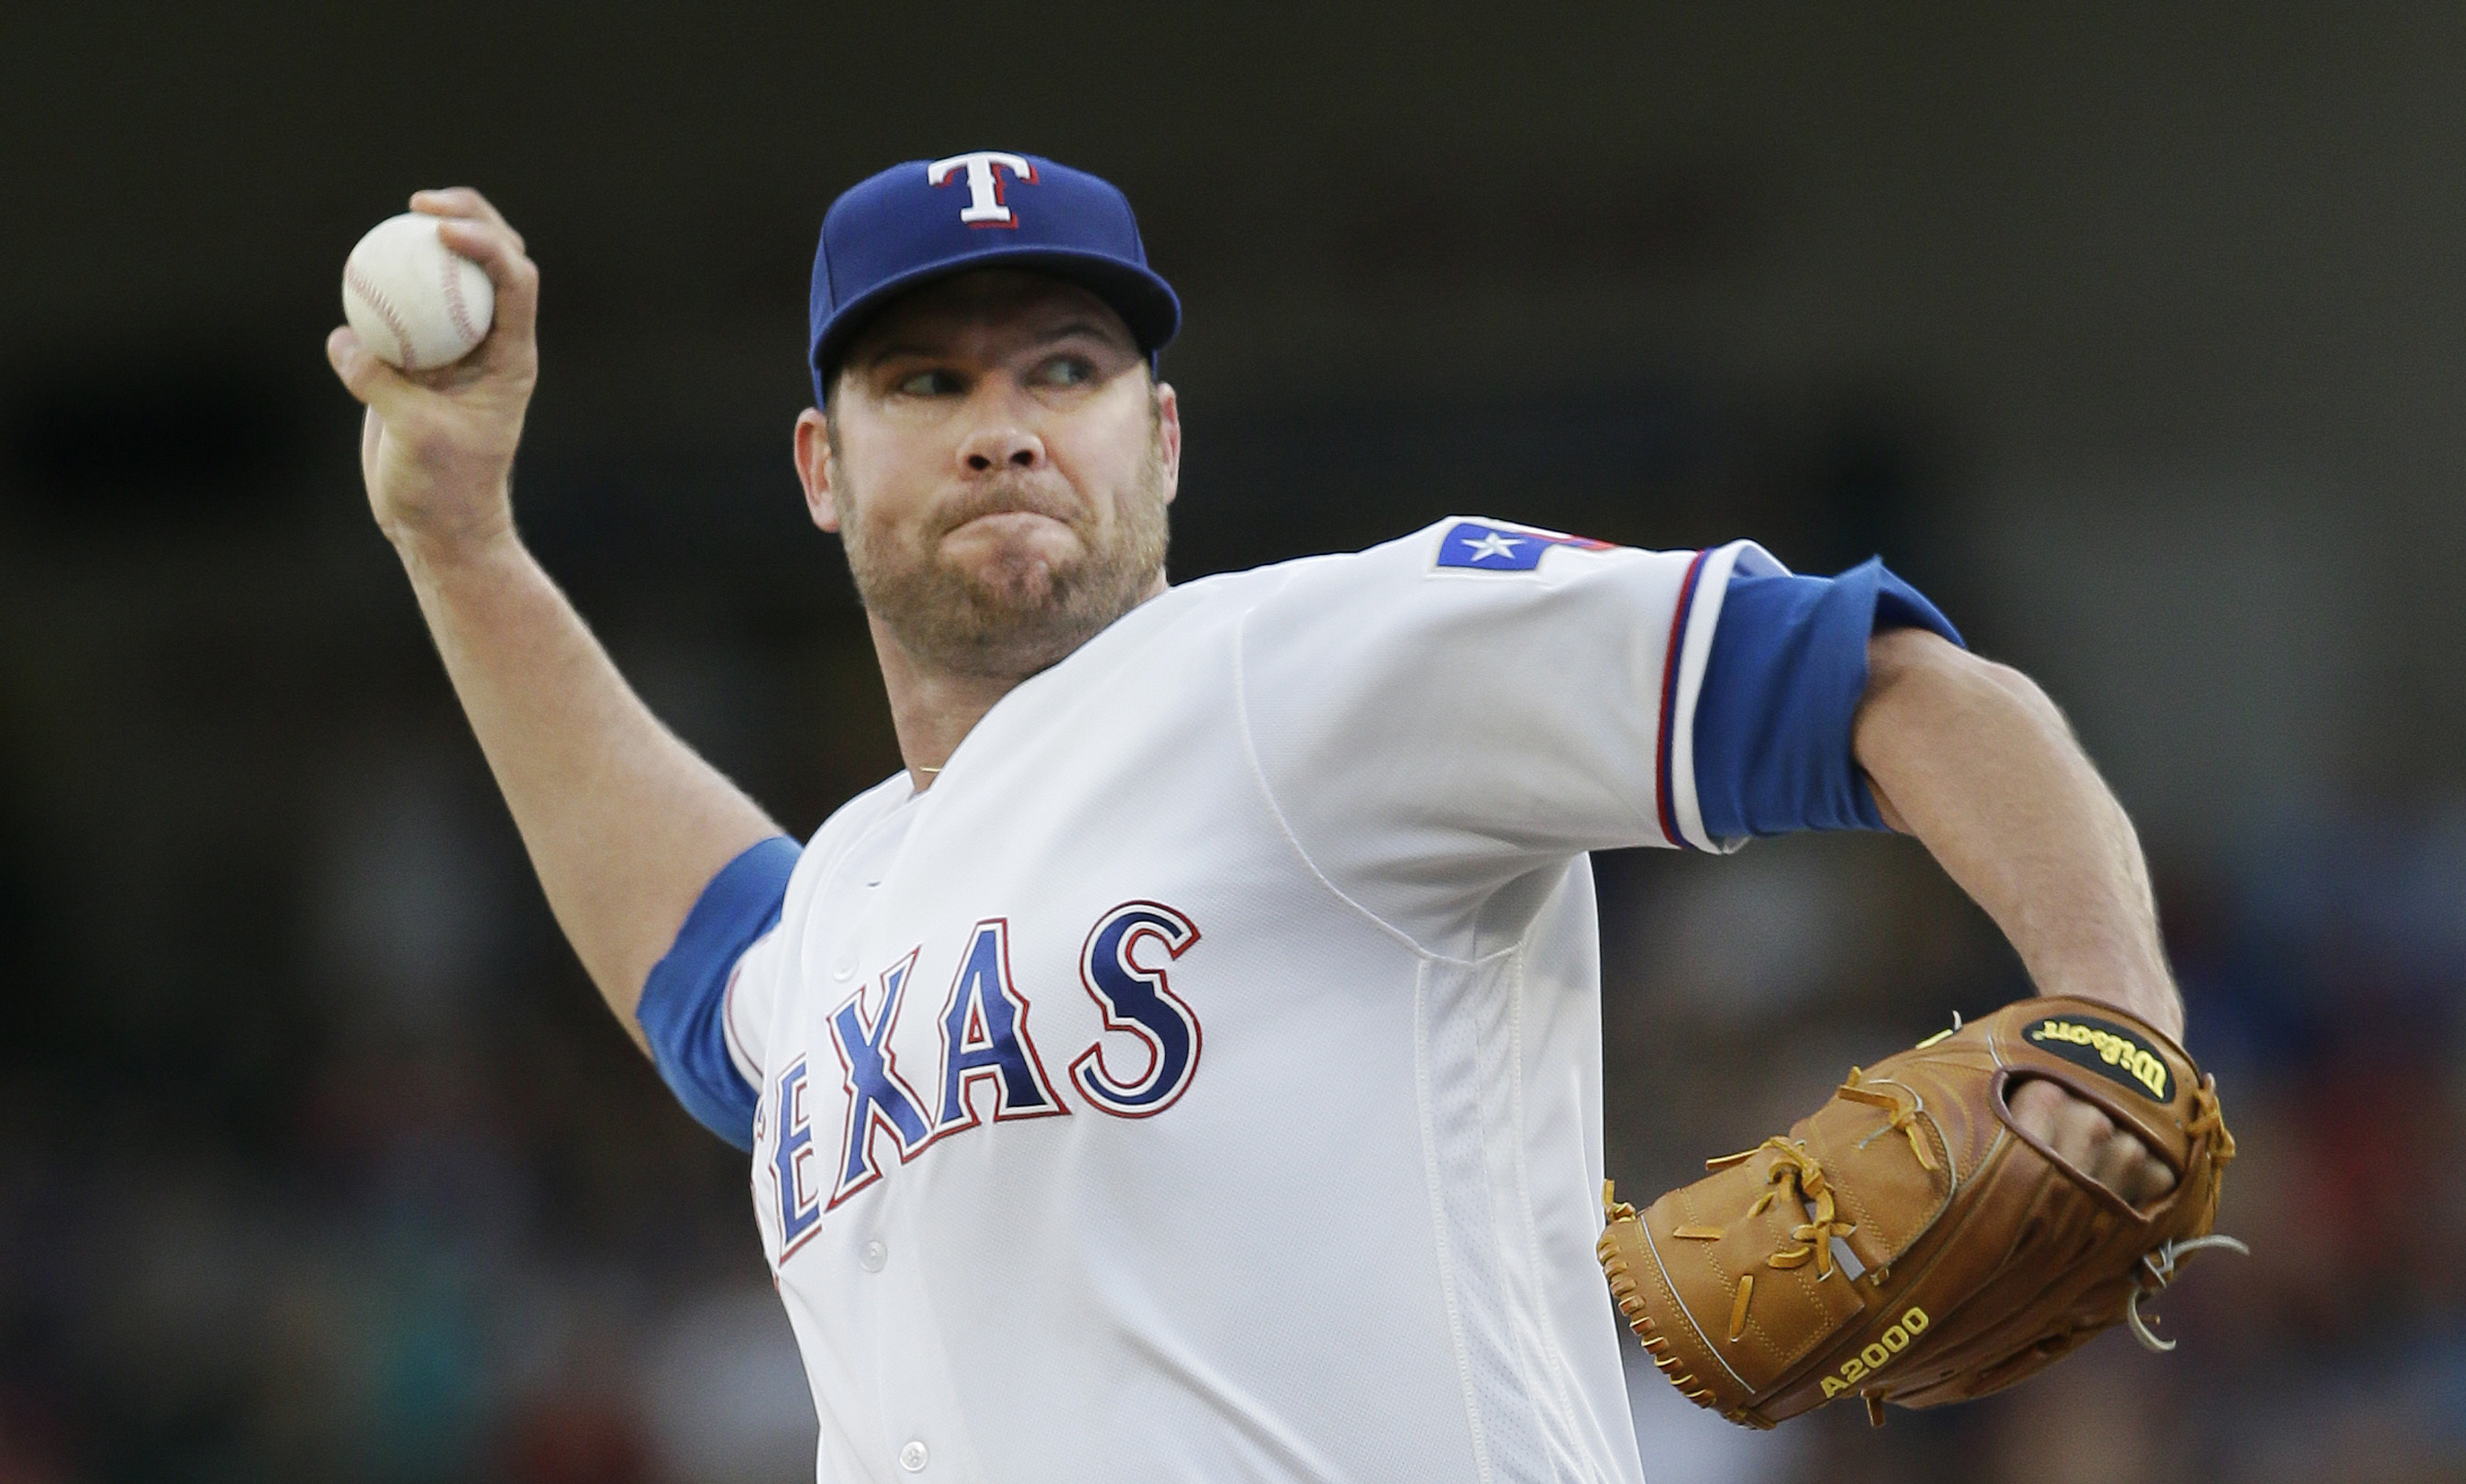 Texas Rangers starting pitcher Colby Lewis throws during the first inning of a baseball game against the Cincinnati Reds in Arlington, Texas, Tuesday, June 21, 2016. (AP Photo/LM Otero)